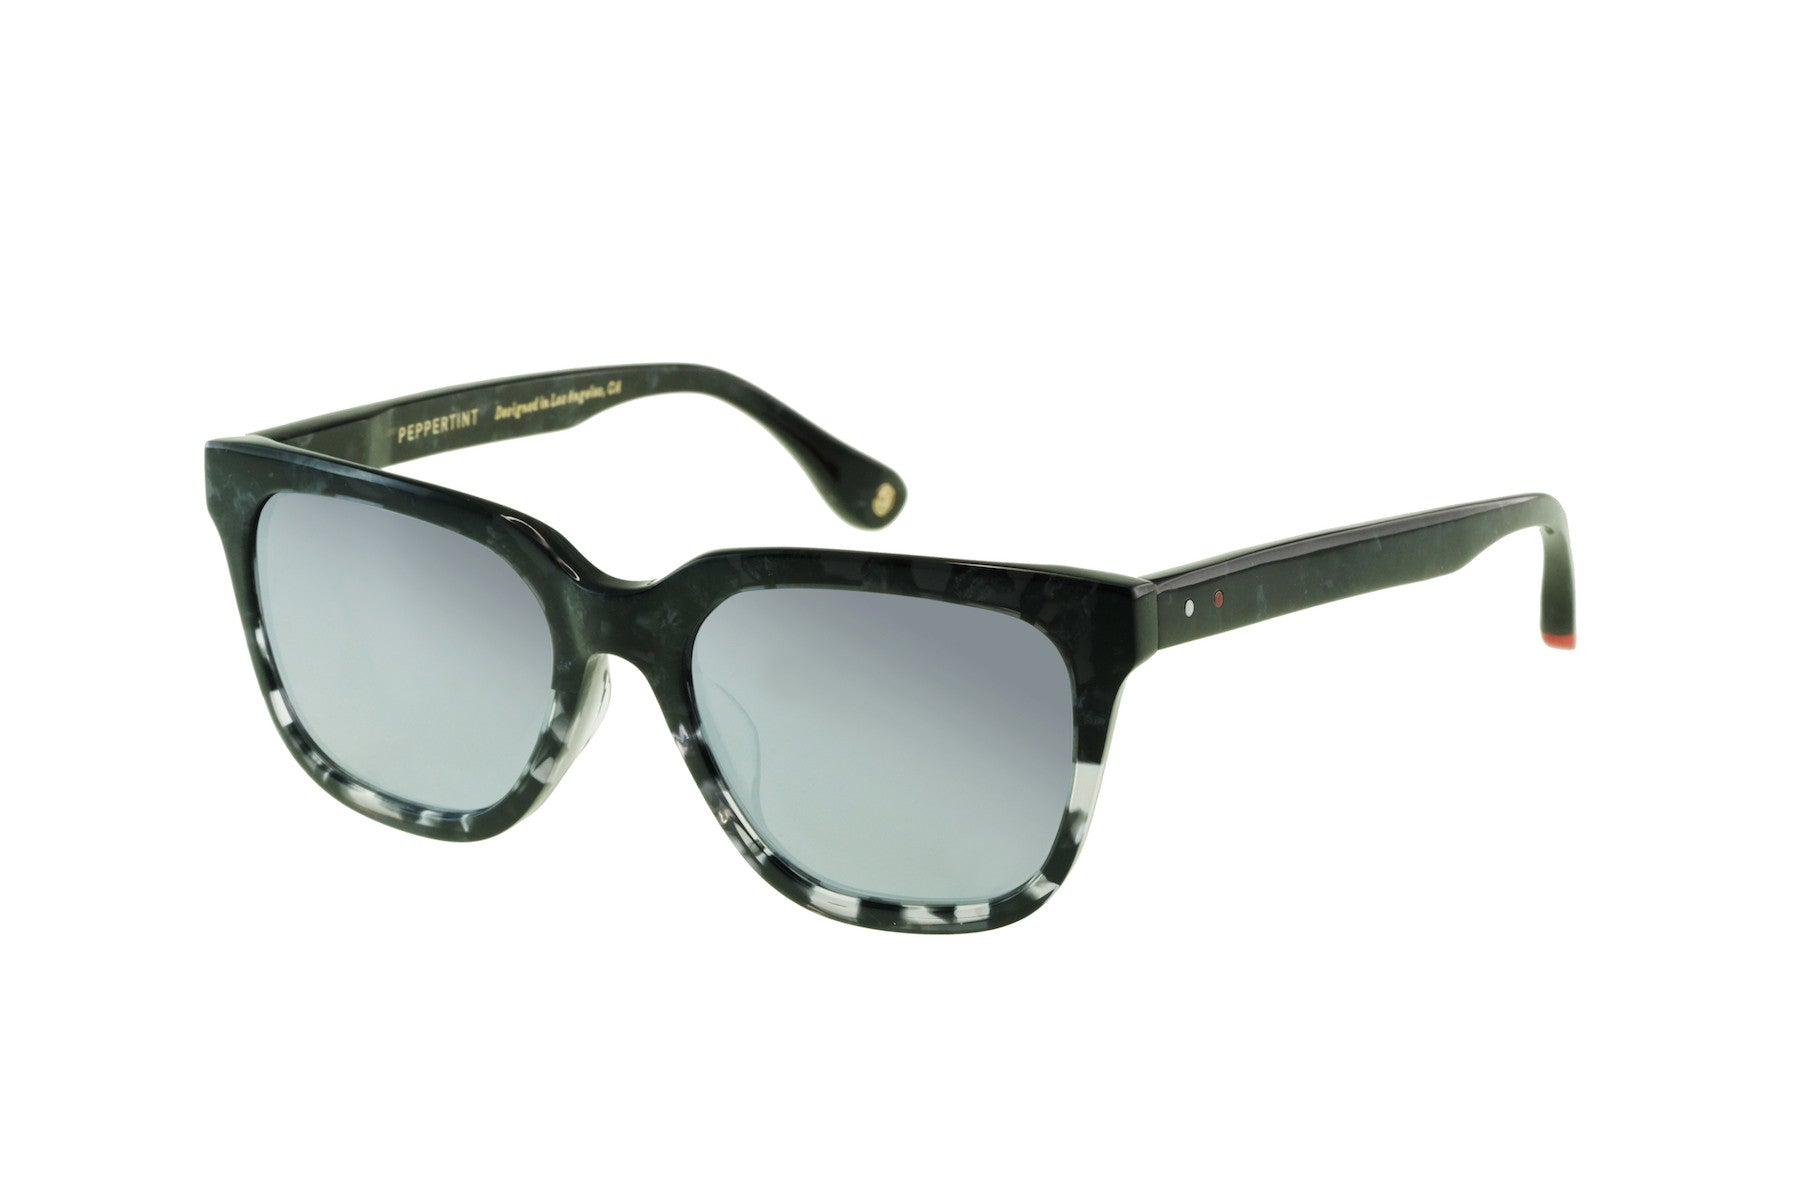 La Cienega II 928 - Peppertint - Designer sunglasses